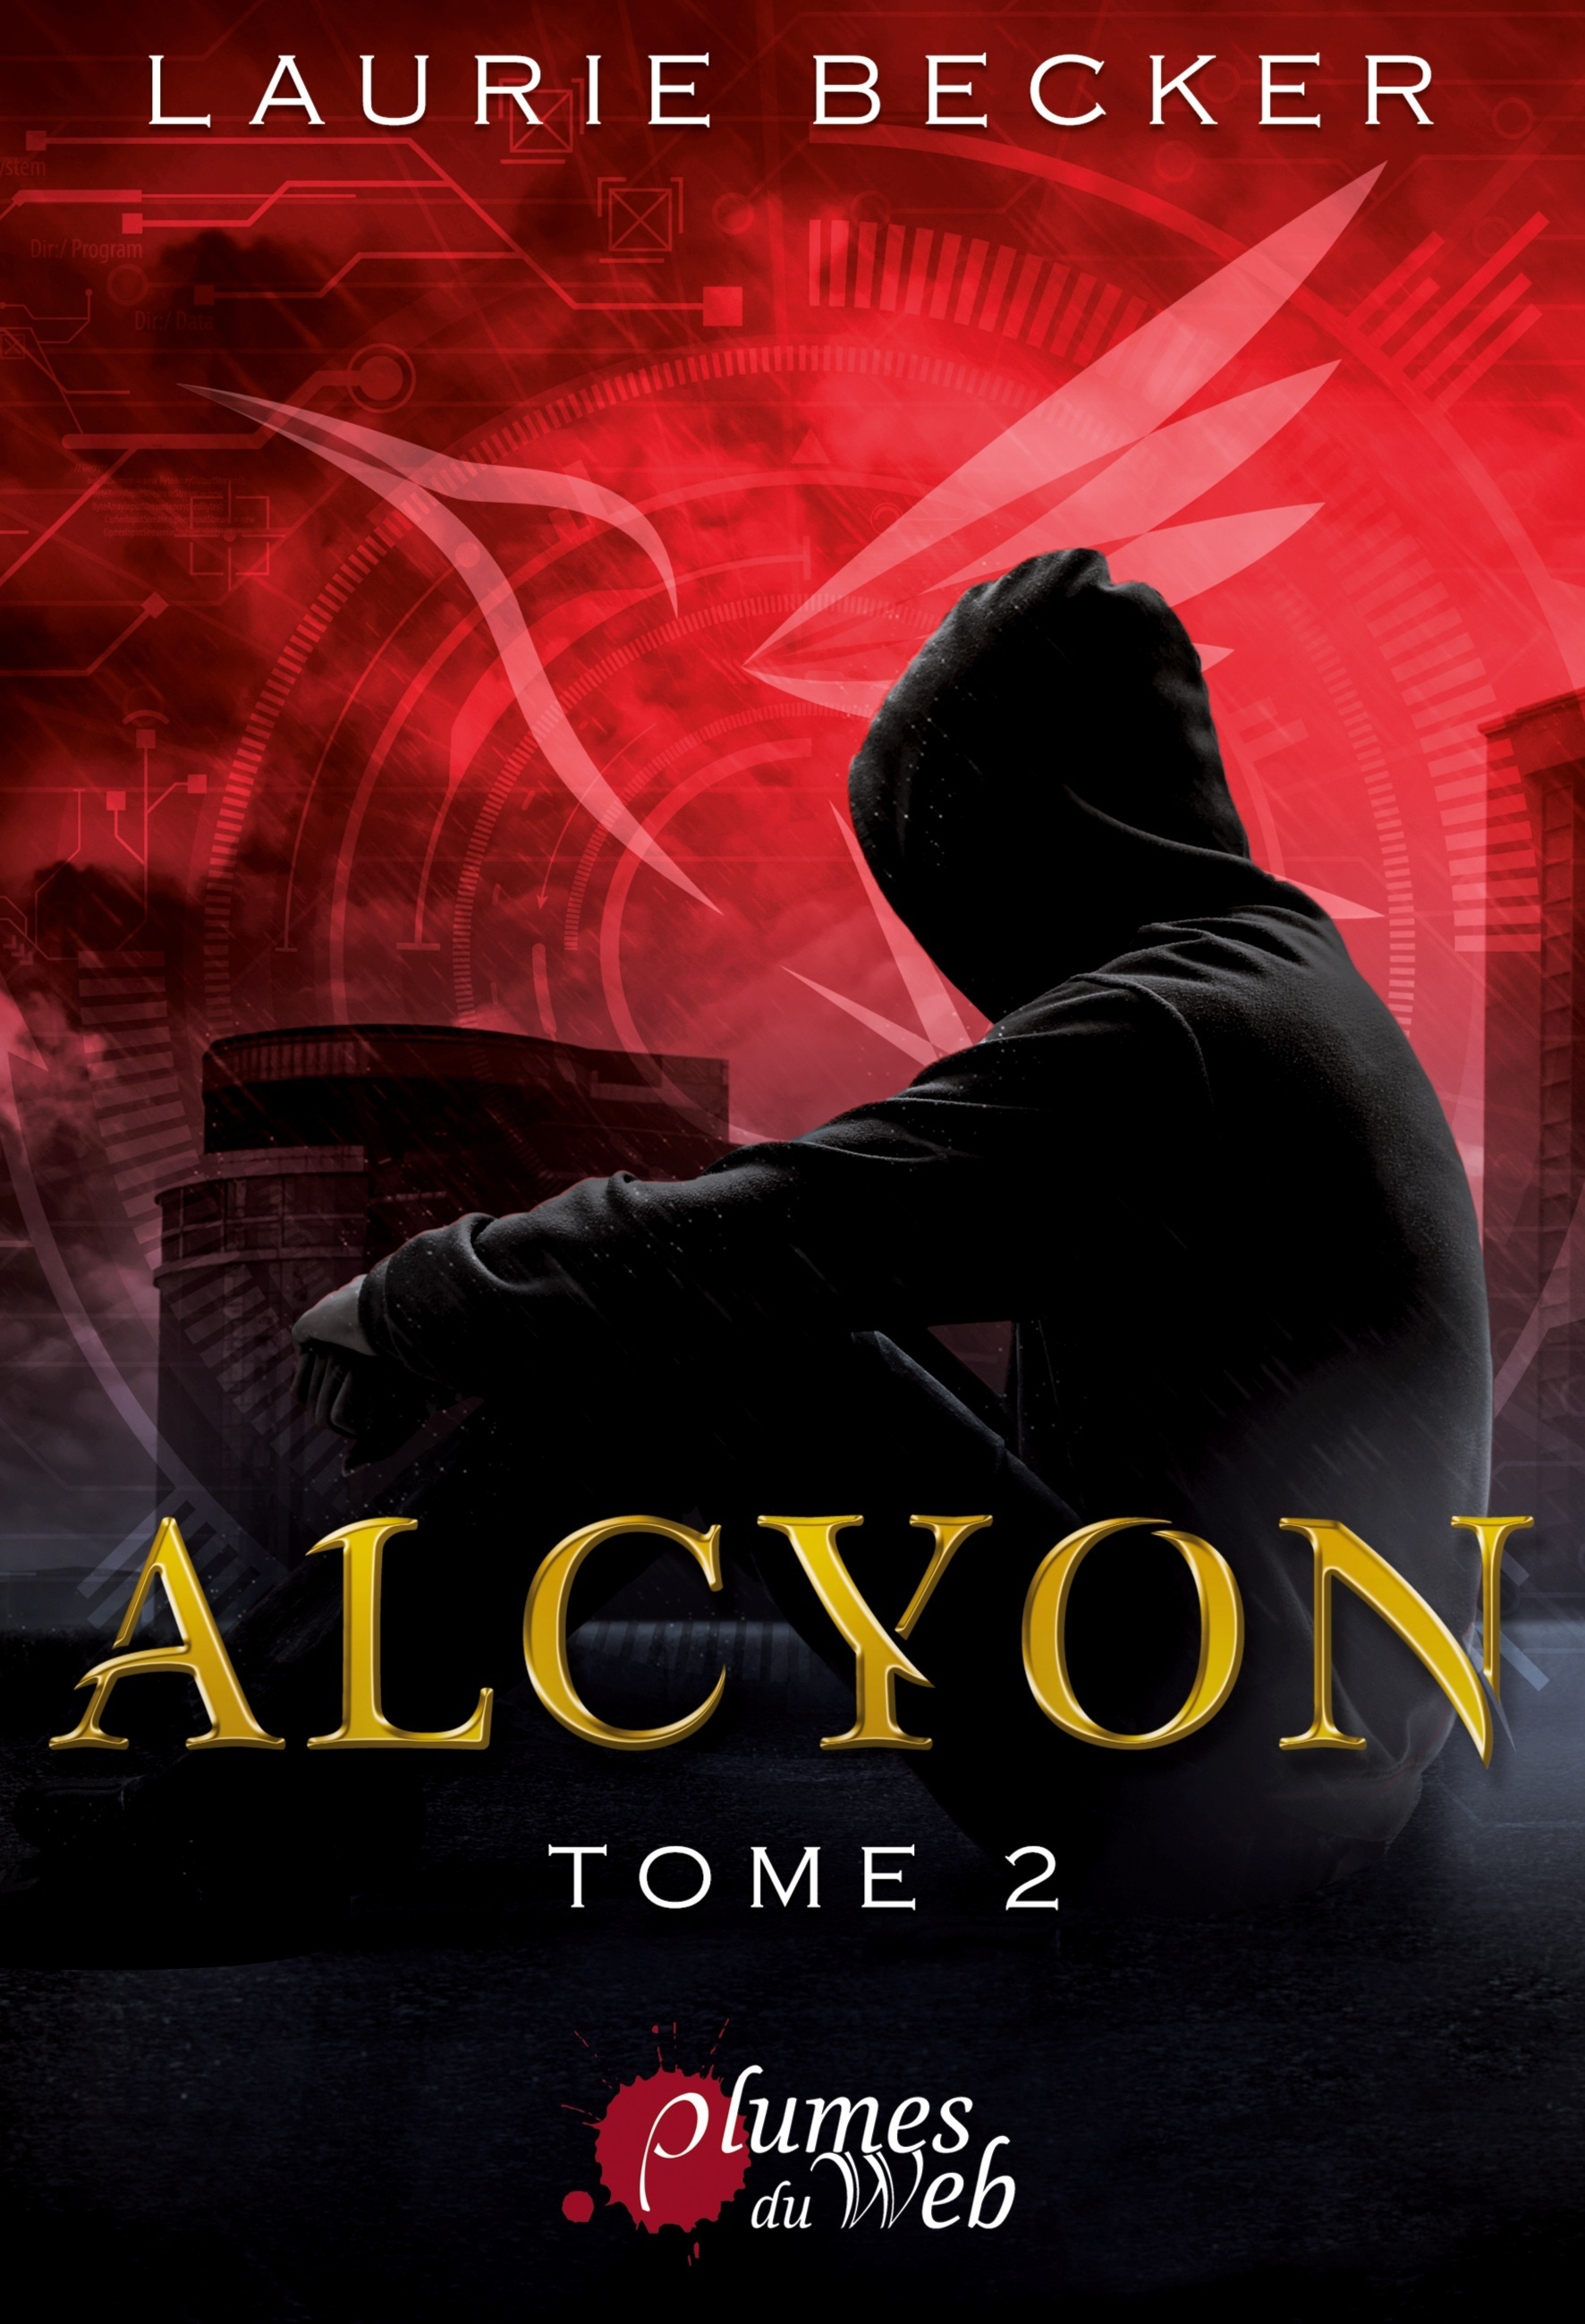 ALCYON TOME 2